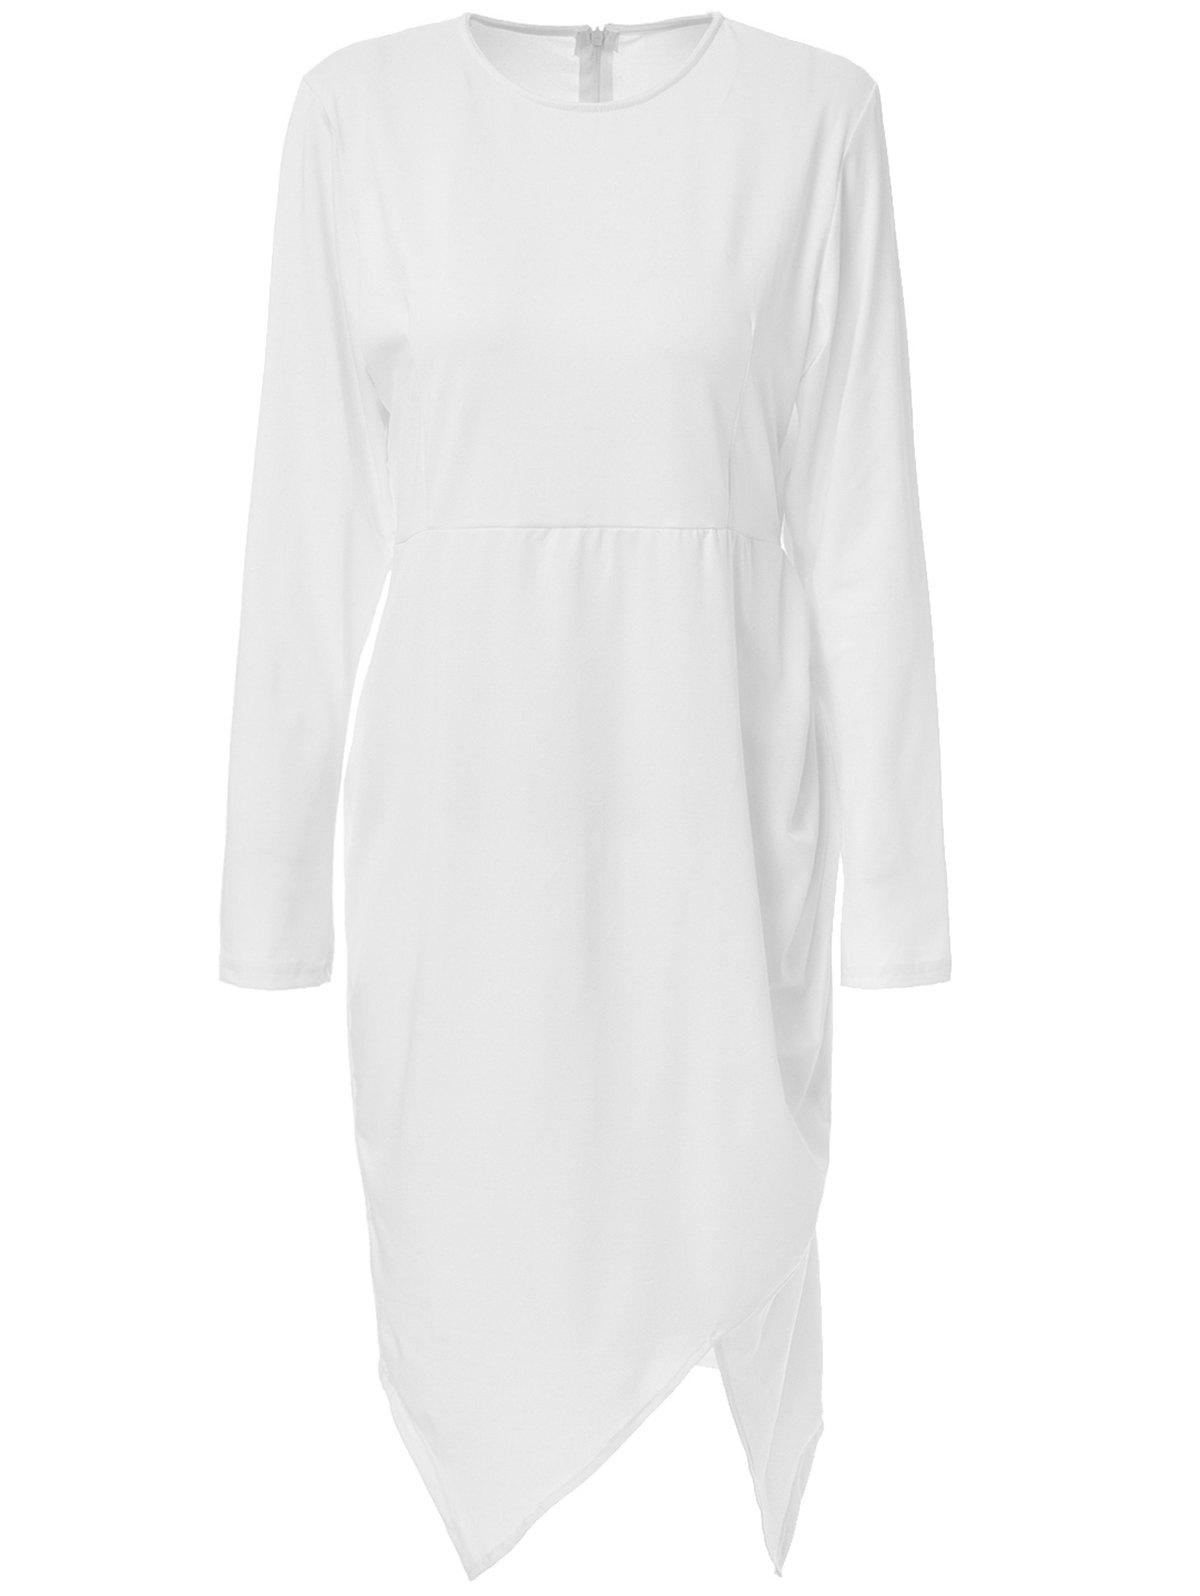 Round Neck Long Sleeve Asymmetrical Plus Size Dress For Women - WHITE 3XL